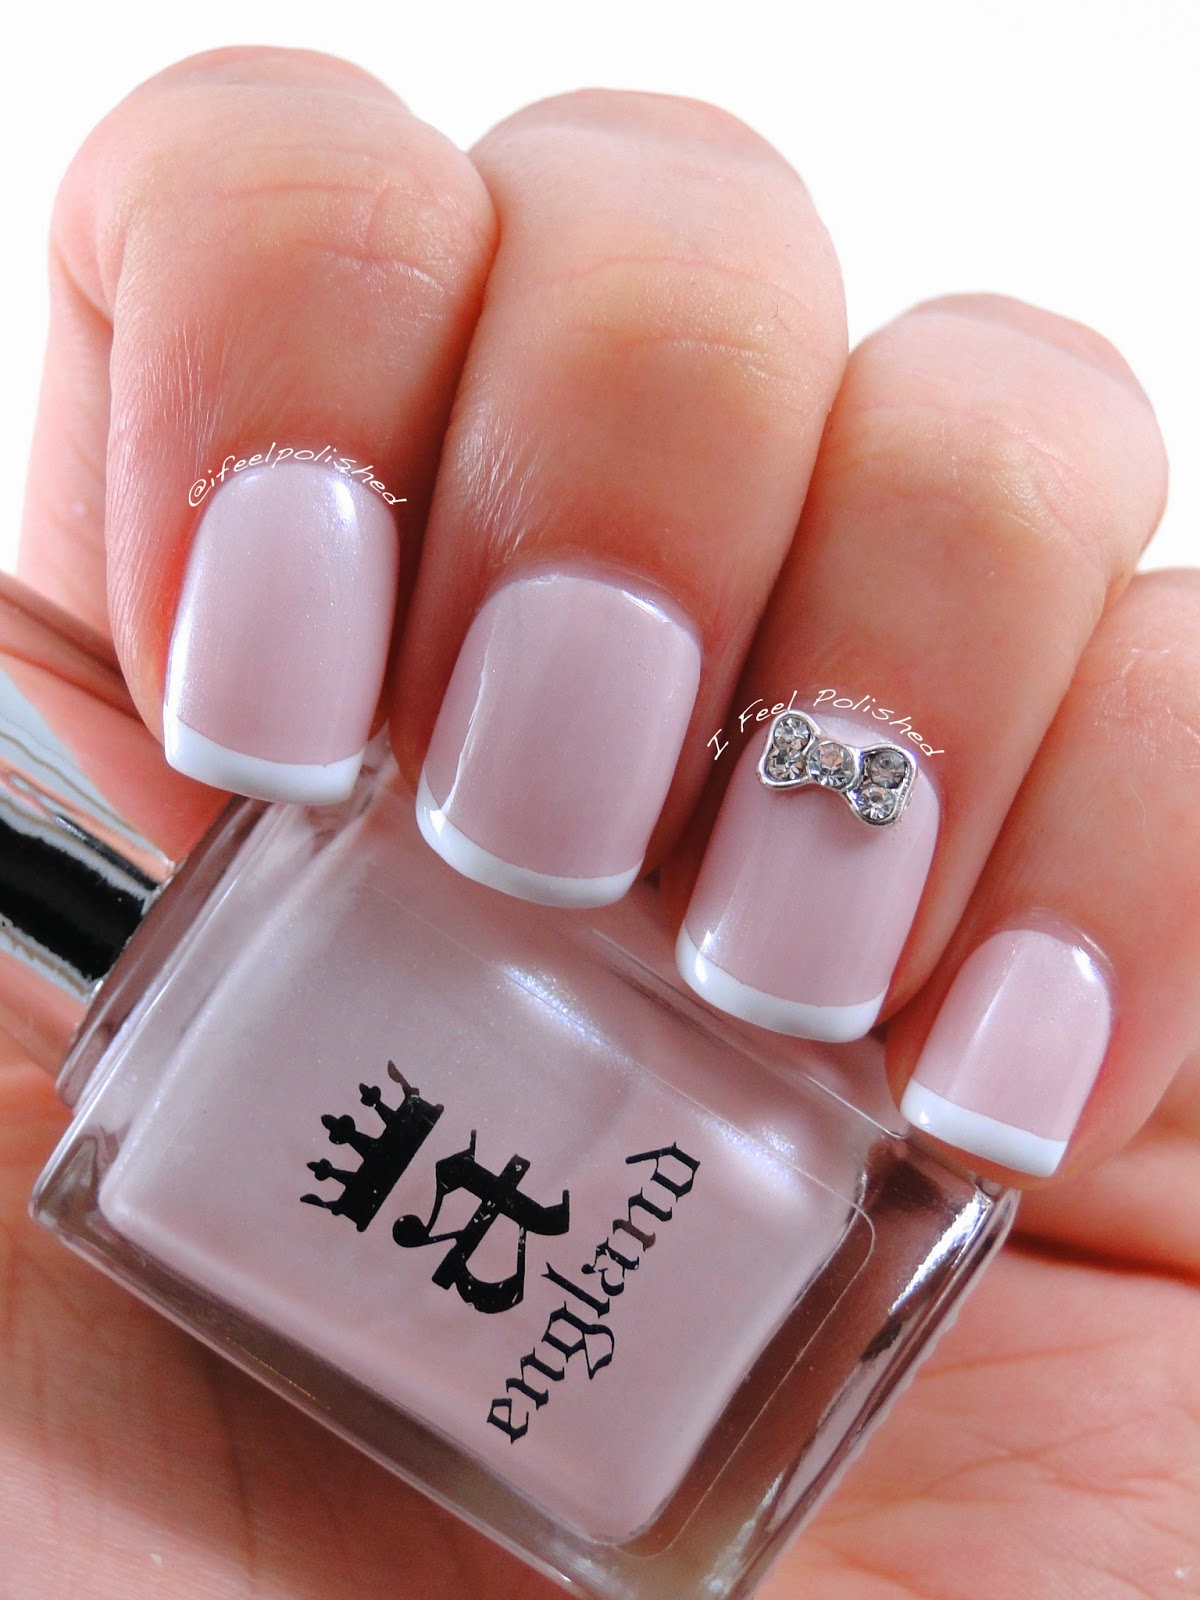 I Feel Polished!: Traditional French Tip